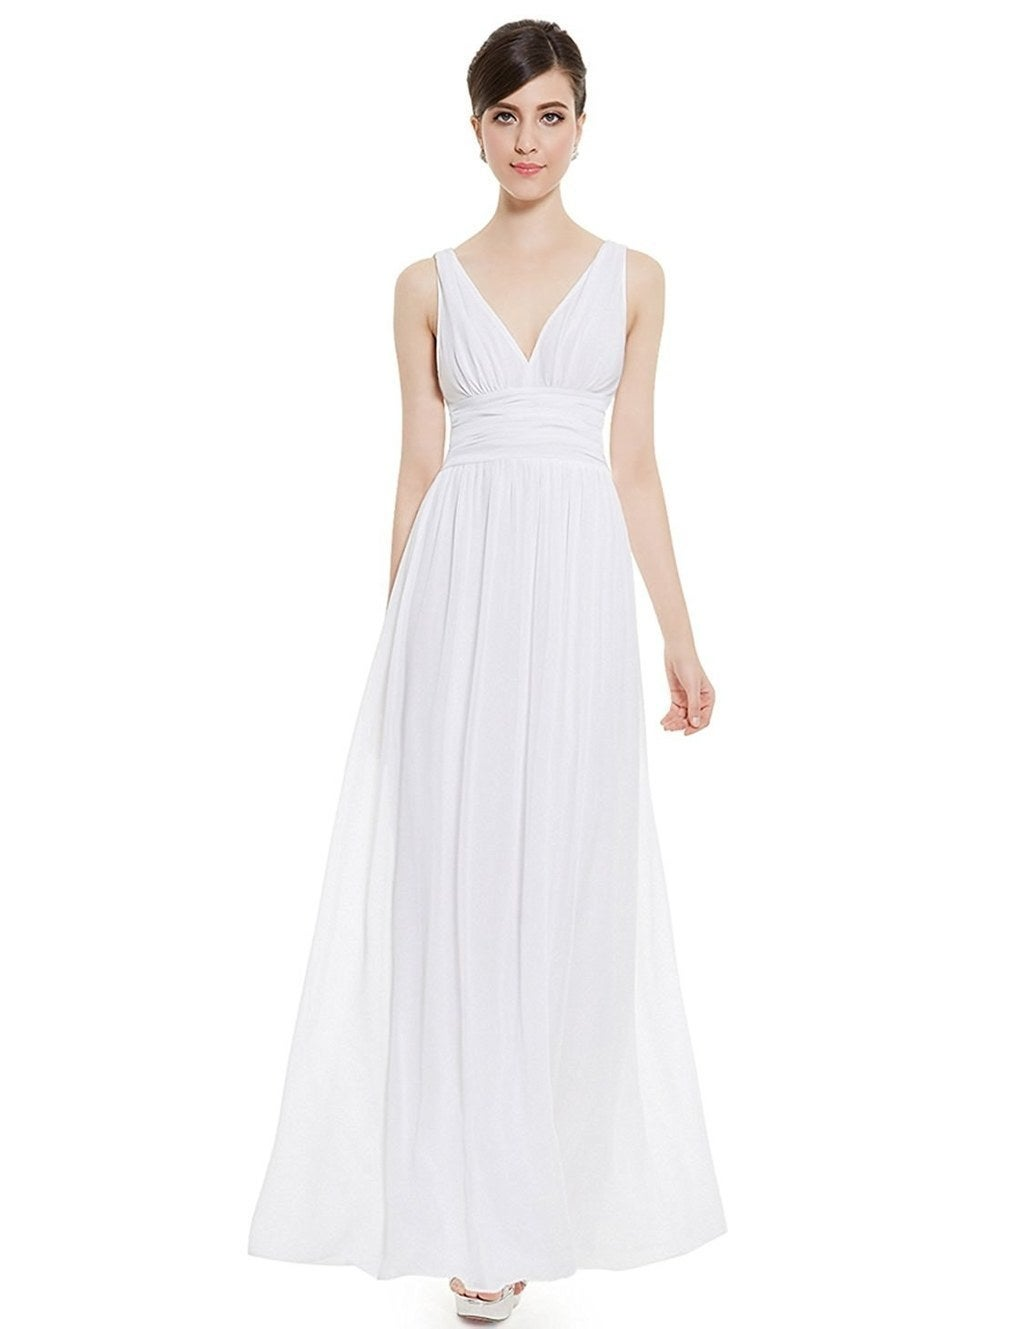 A Casual Maxi Dress That Is Perfect For Save The Date Invitations And Engagement Photo Shoots